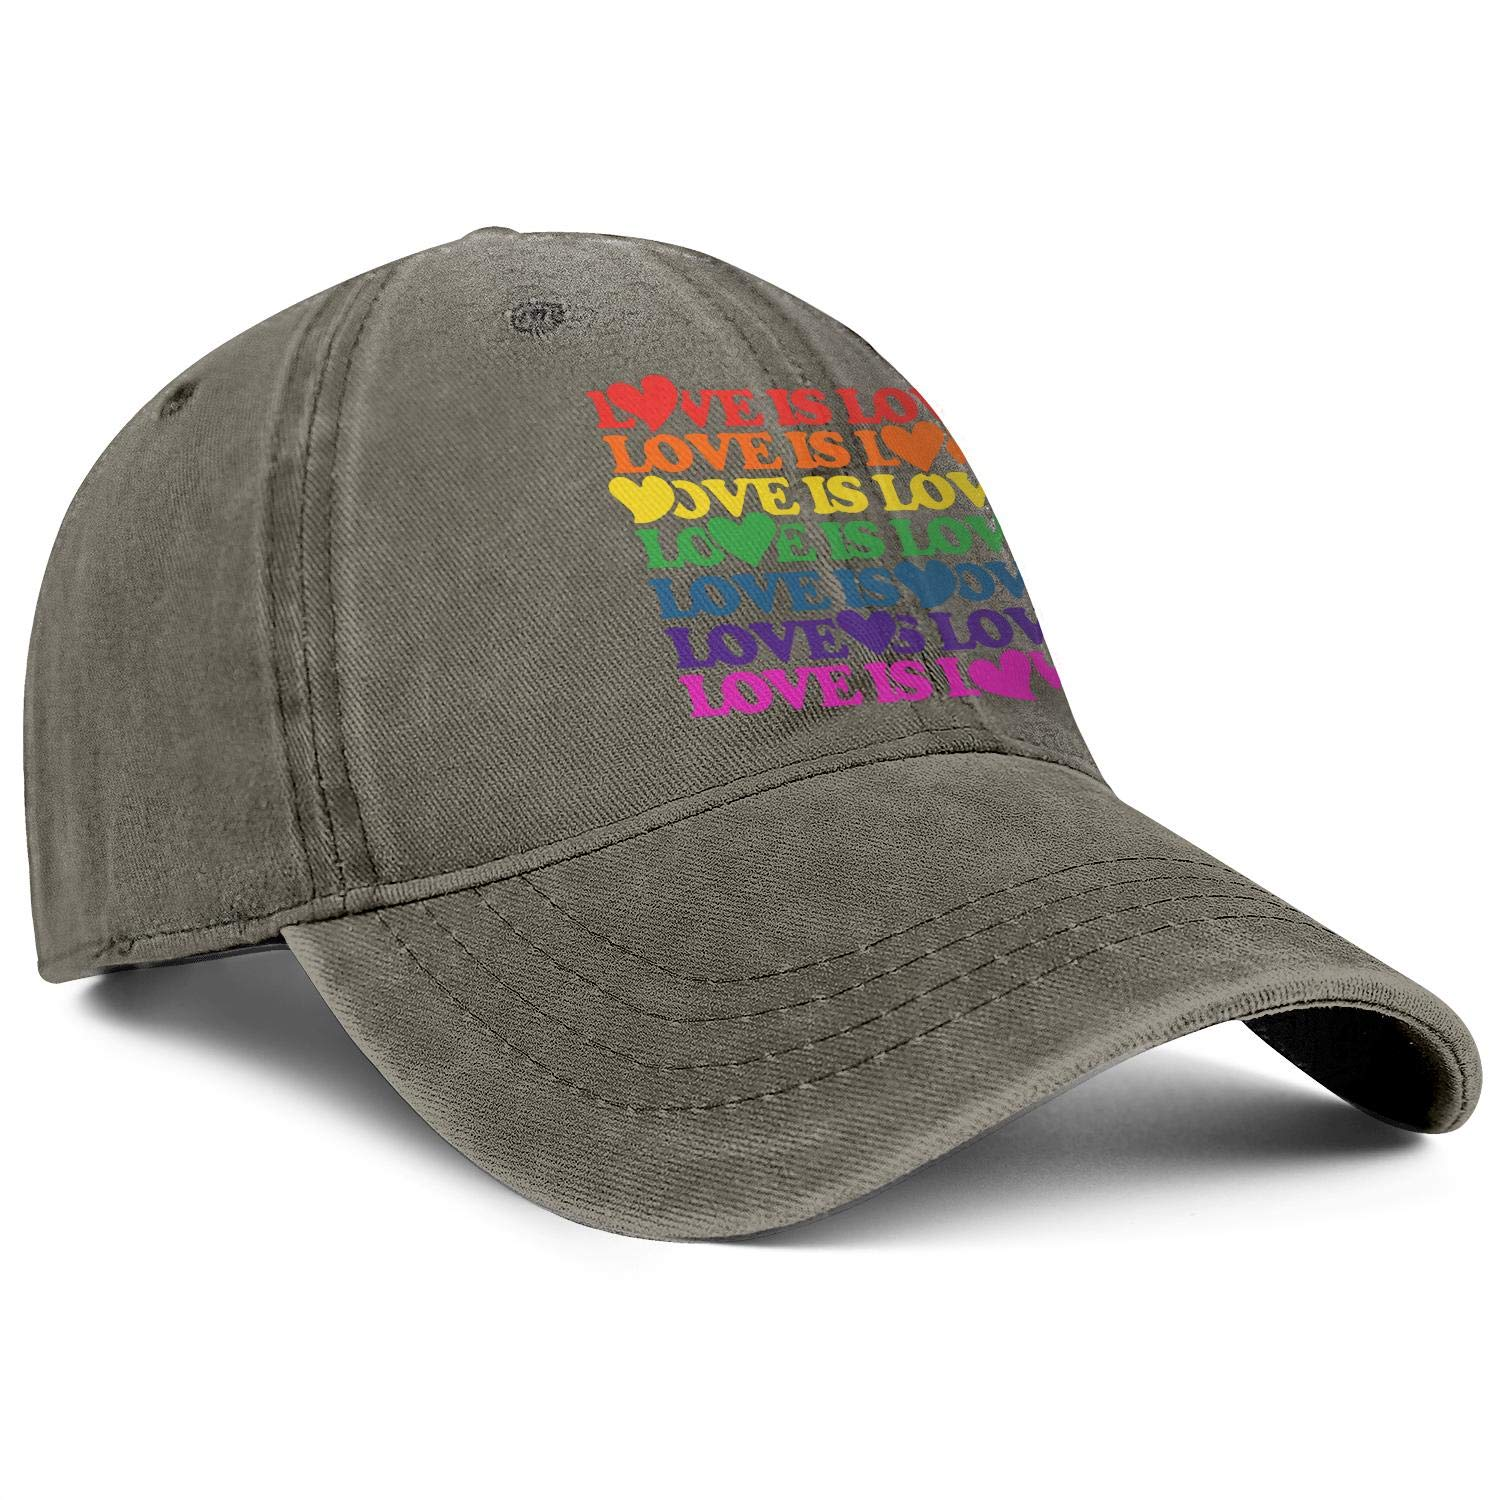 Tennis Hat for Women Love is Love Gay Pride Rainbow Flag Adjustable Breathable Vintage Trukcer